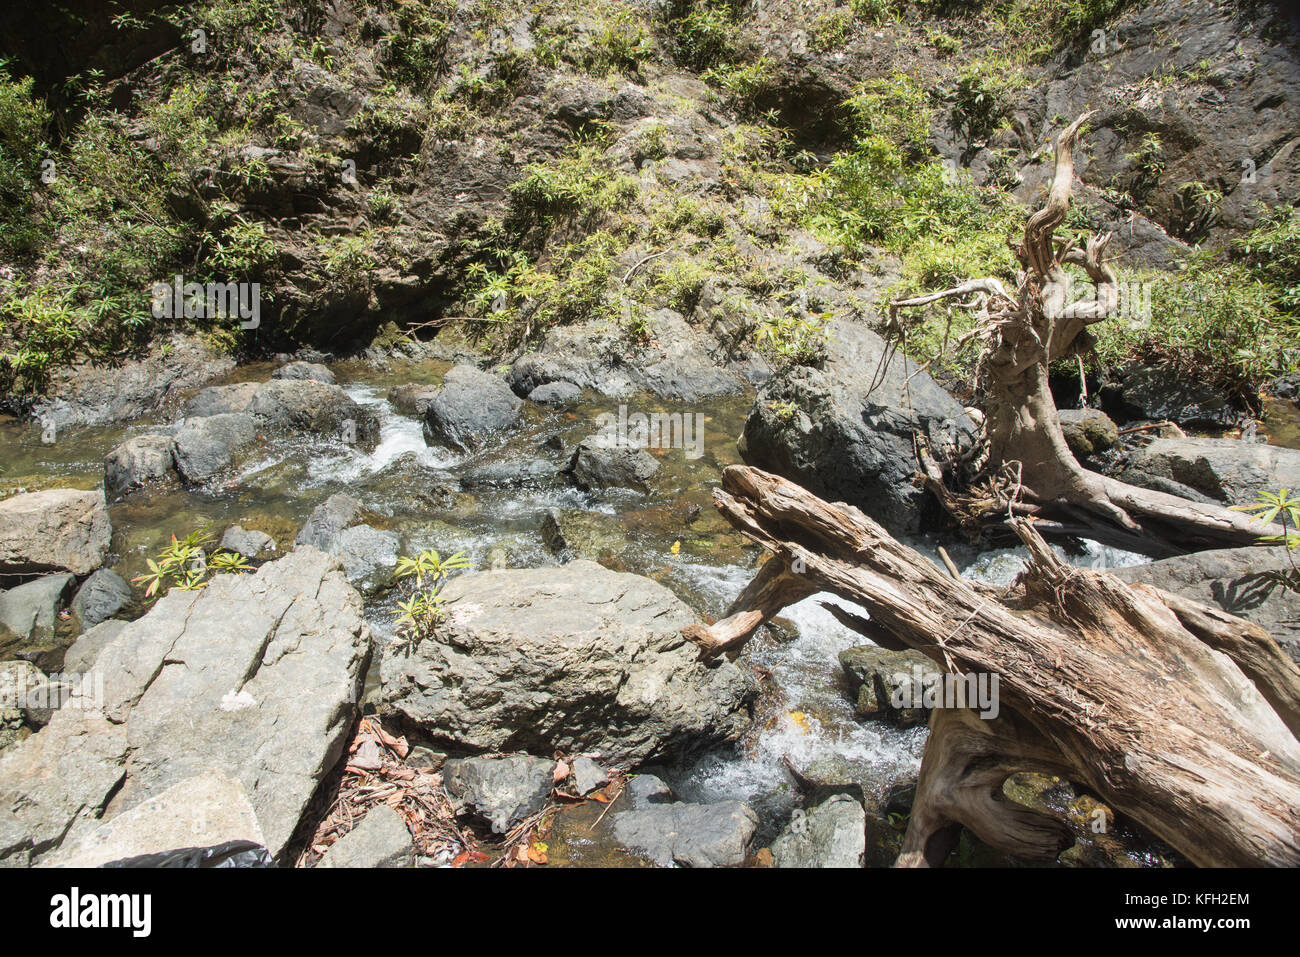 Detail of rocky stream with tree roots in the remote tropical rainforest of Suva, Fiji - Stock Image